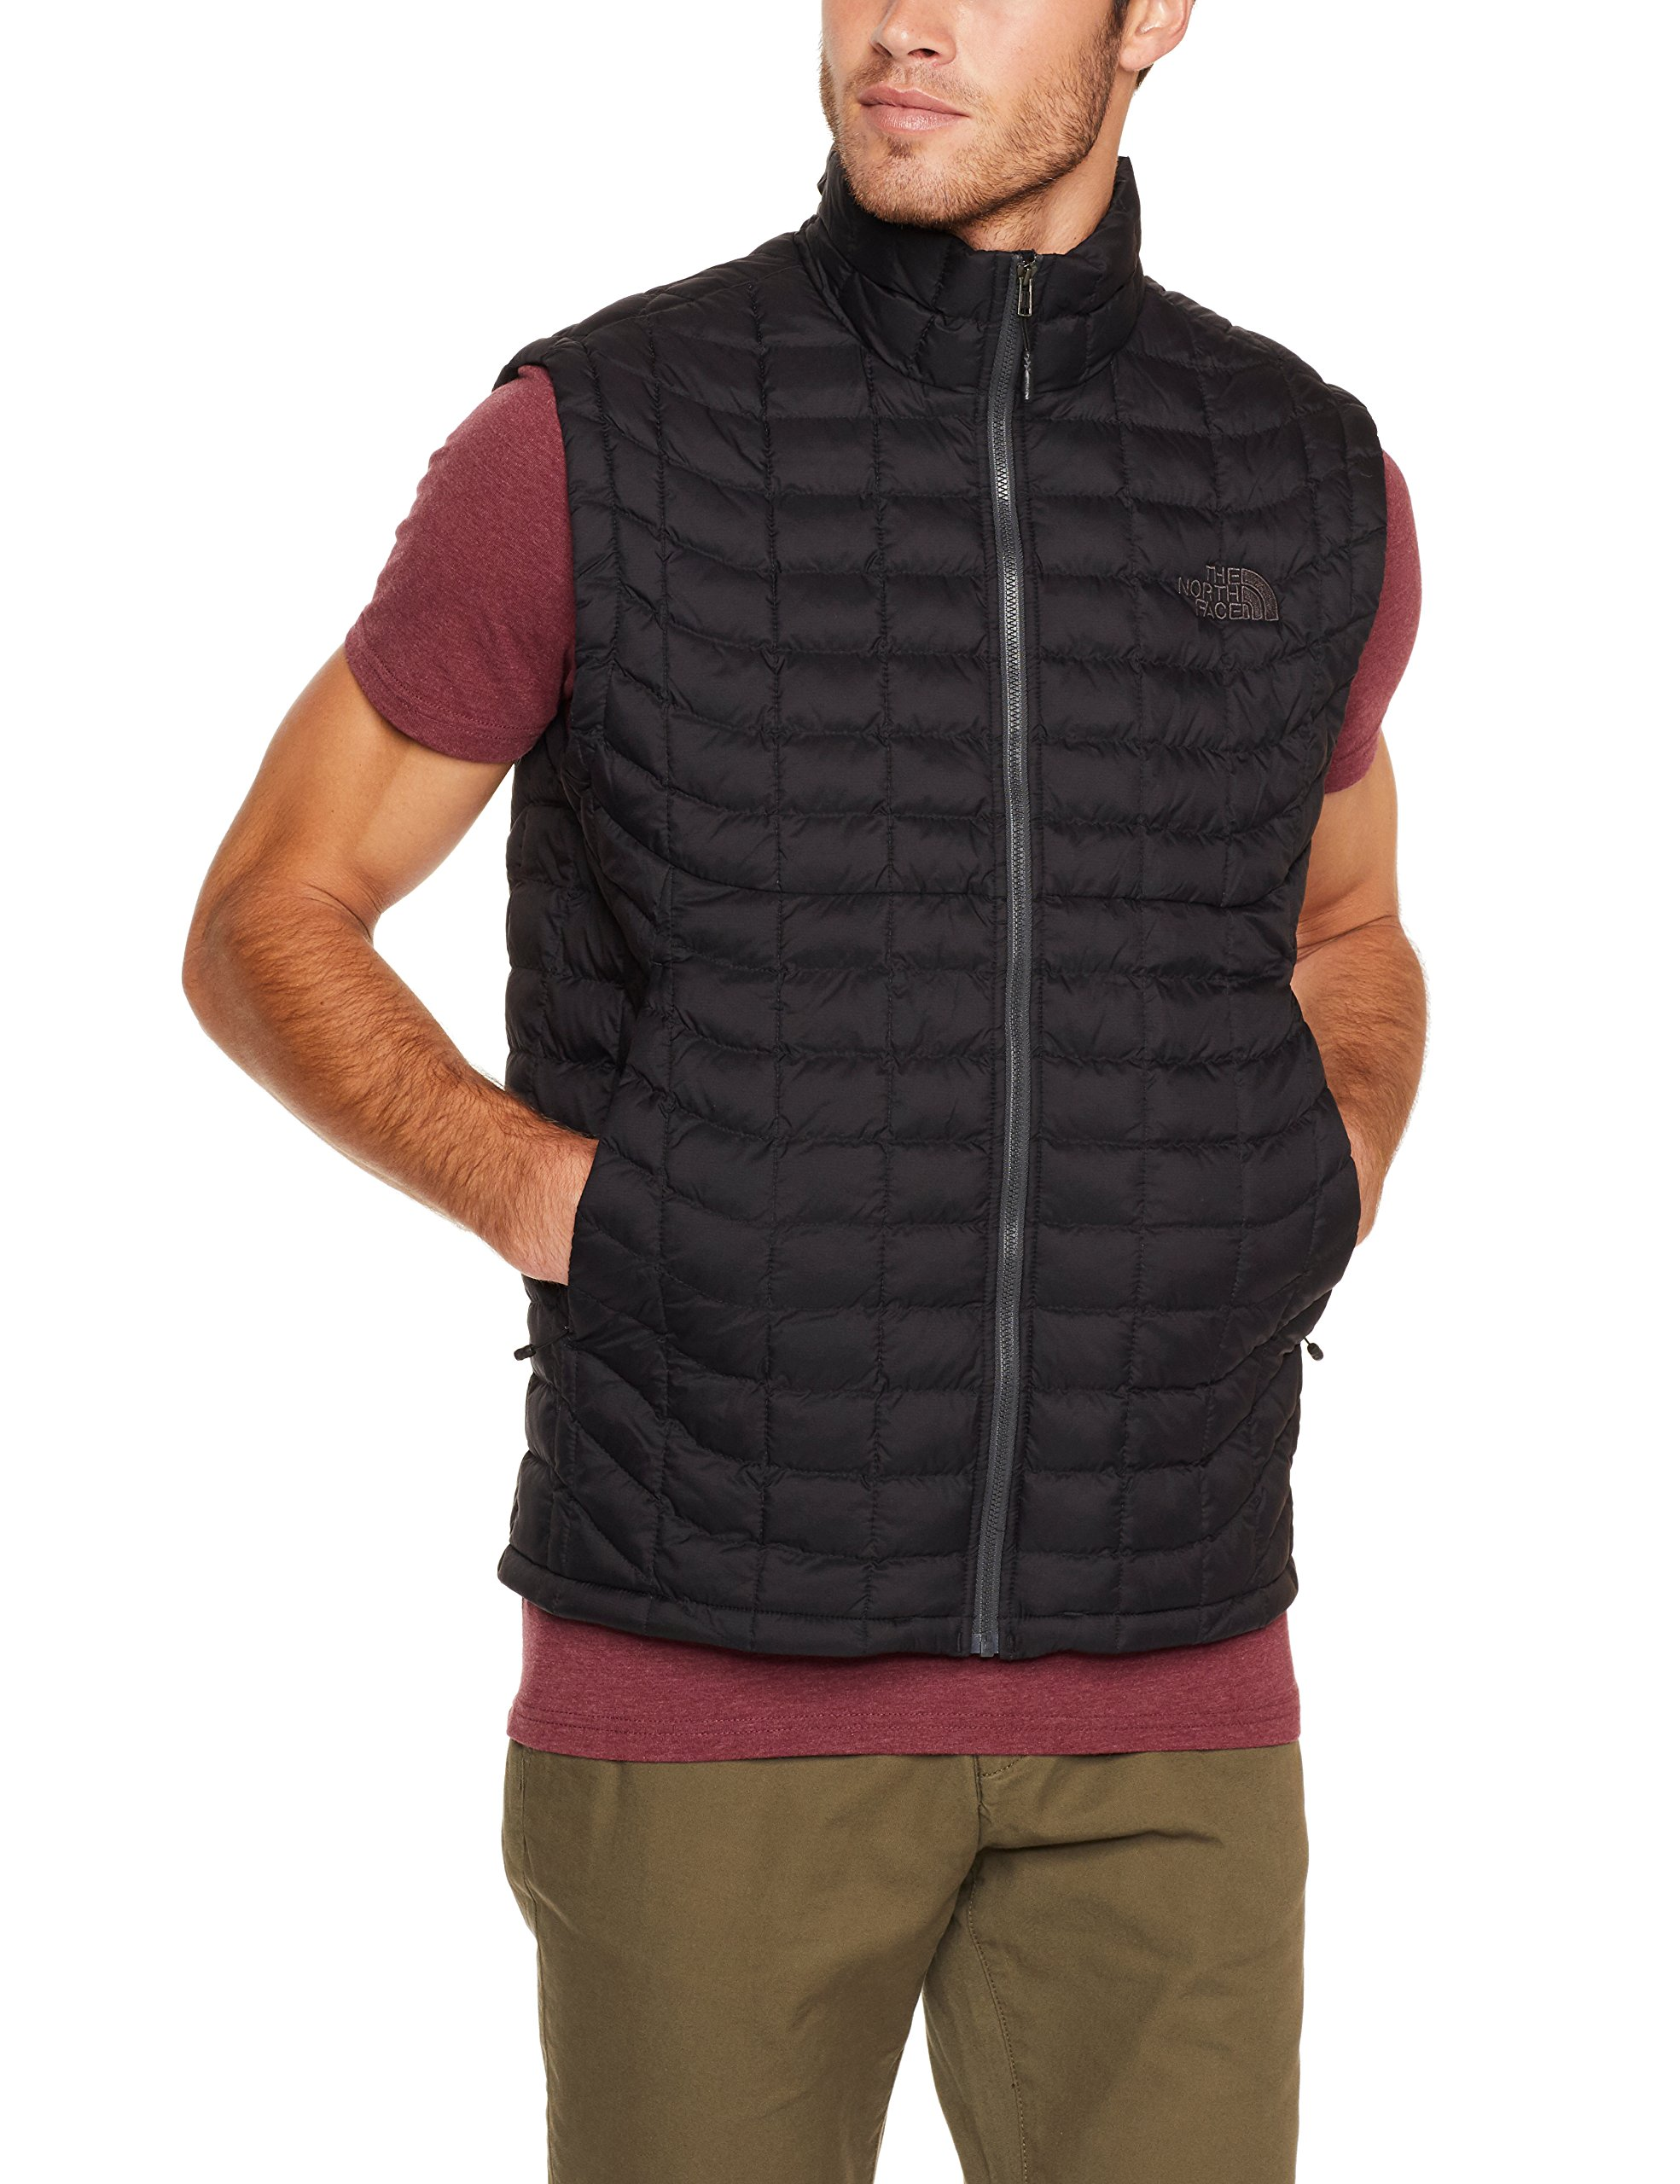 The North Face Men's Thermoball Vest TNF Black Matte - L by The North Face